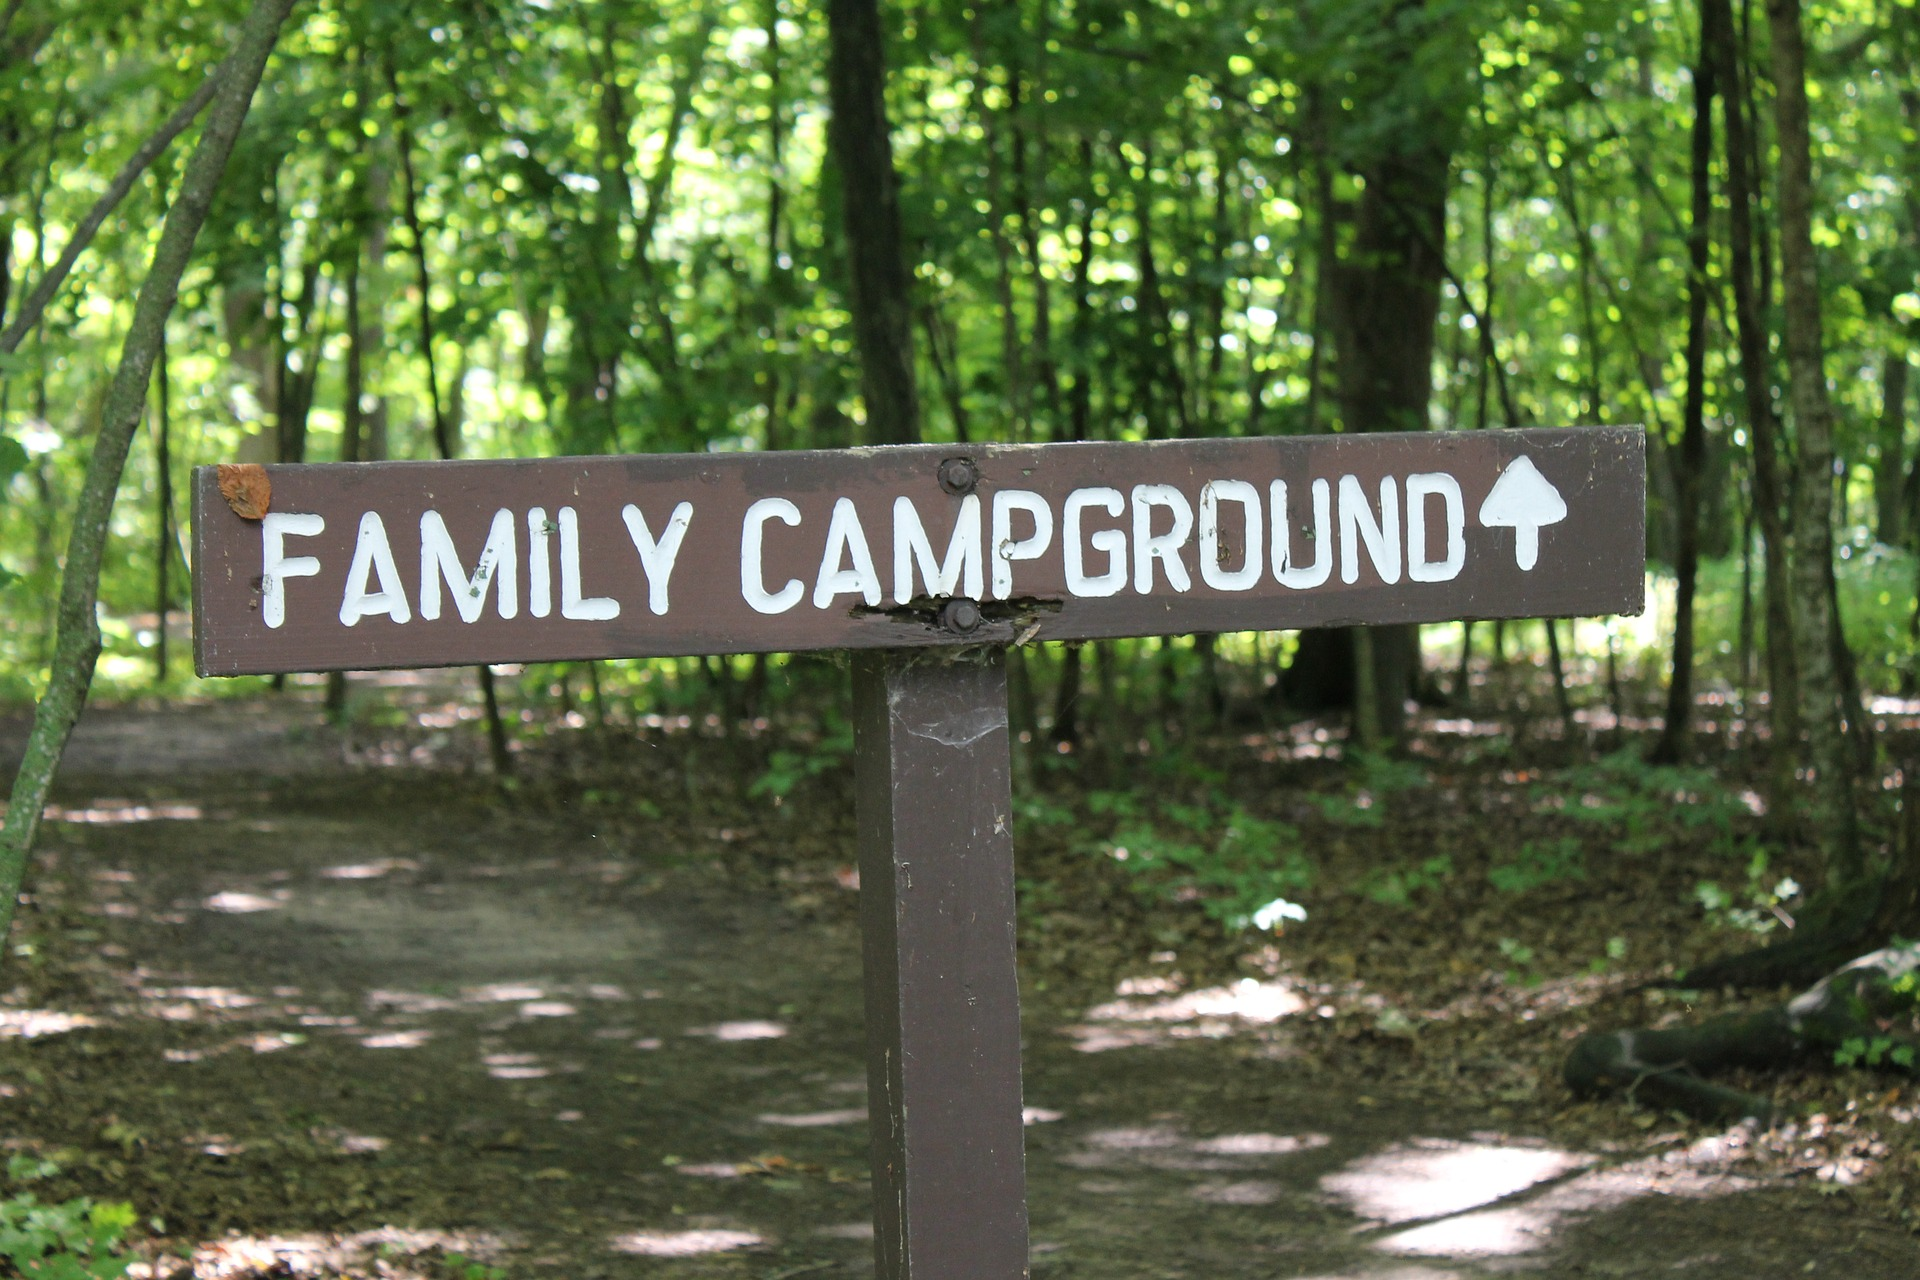 Reserve campsites at campgrounds ahead of time